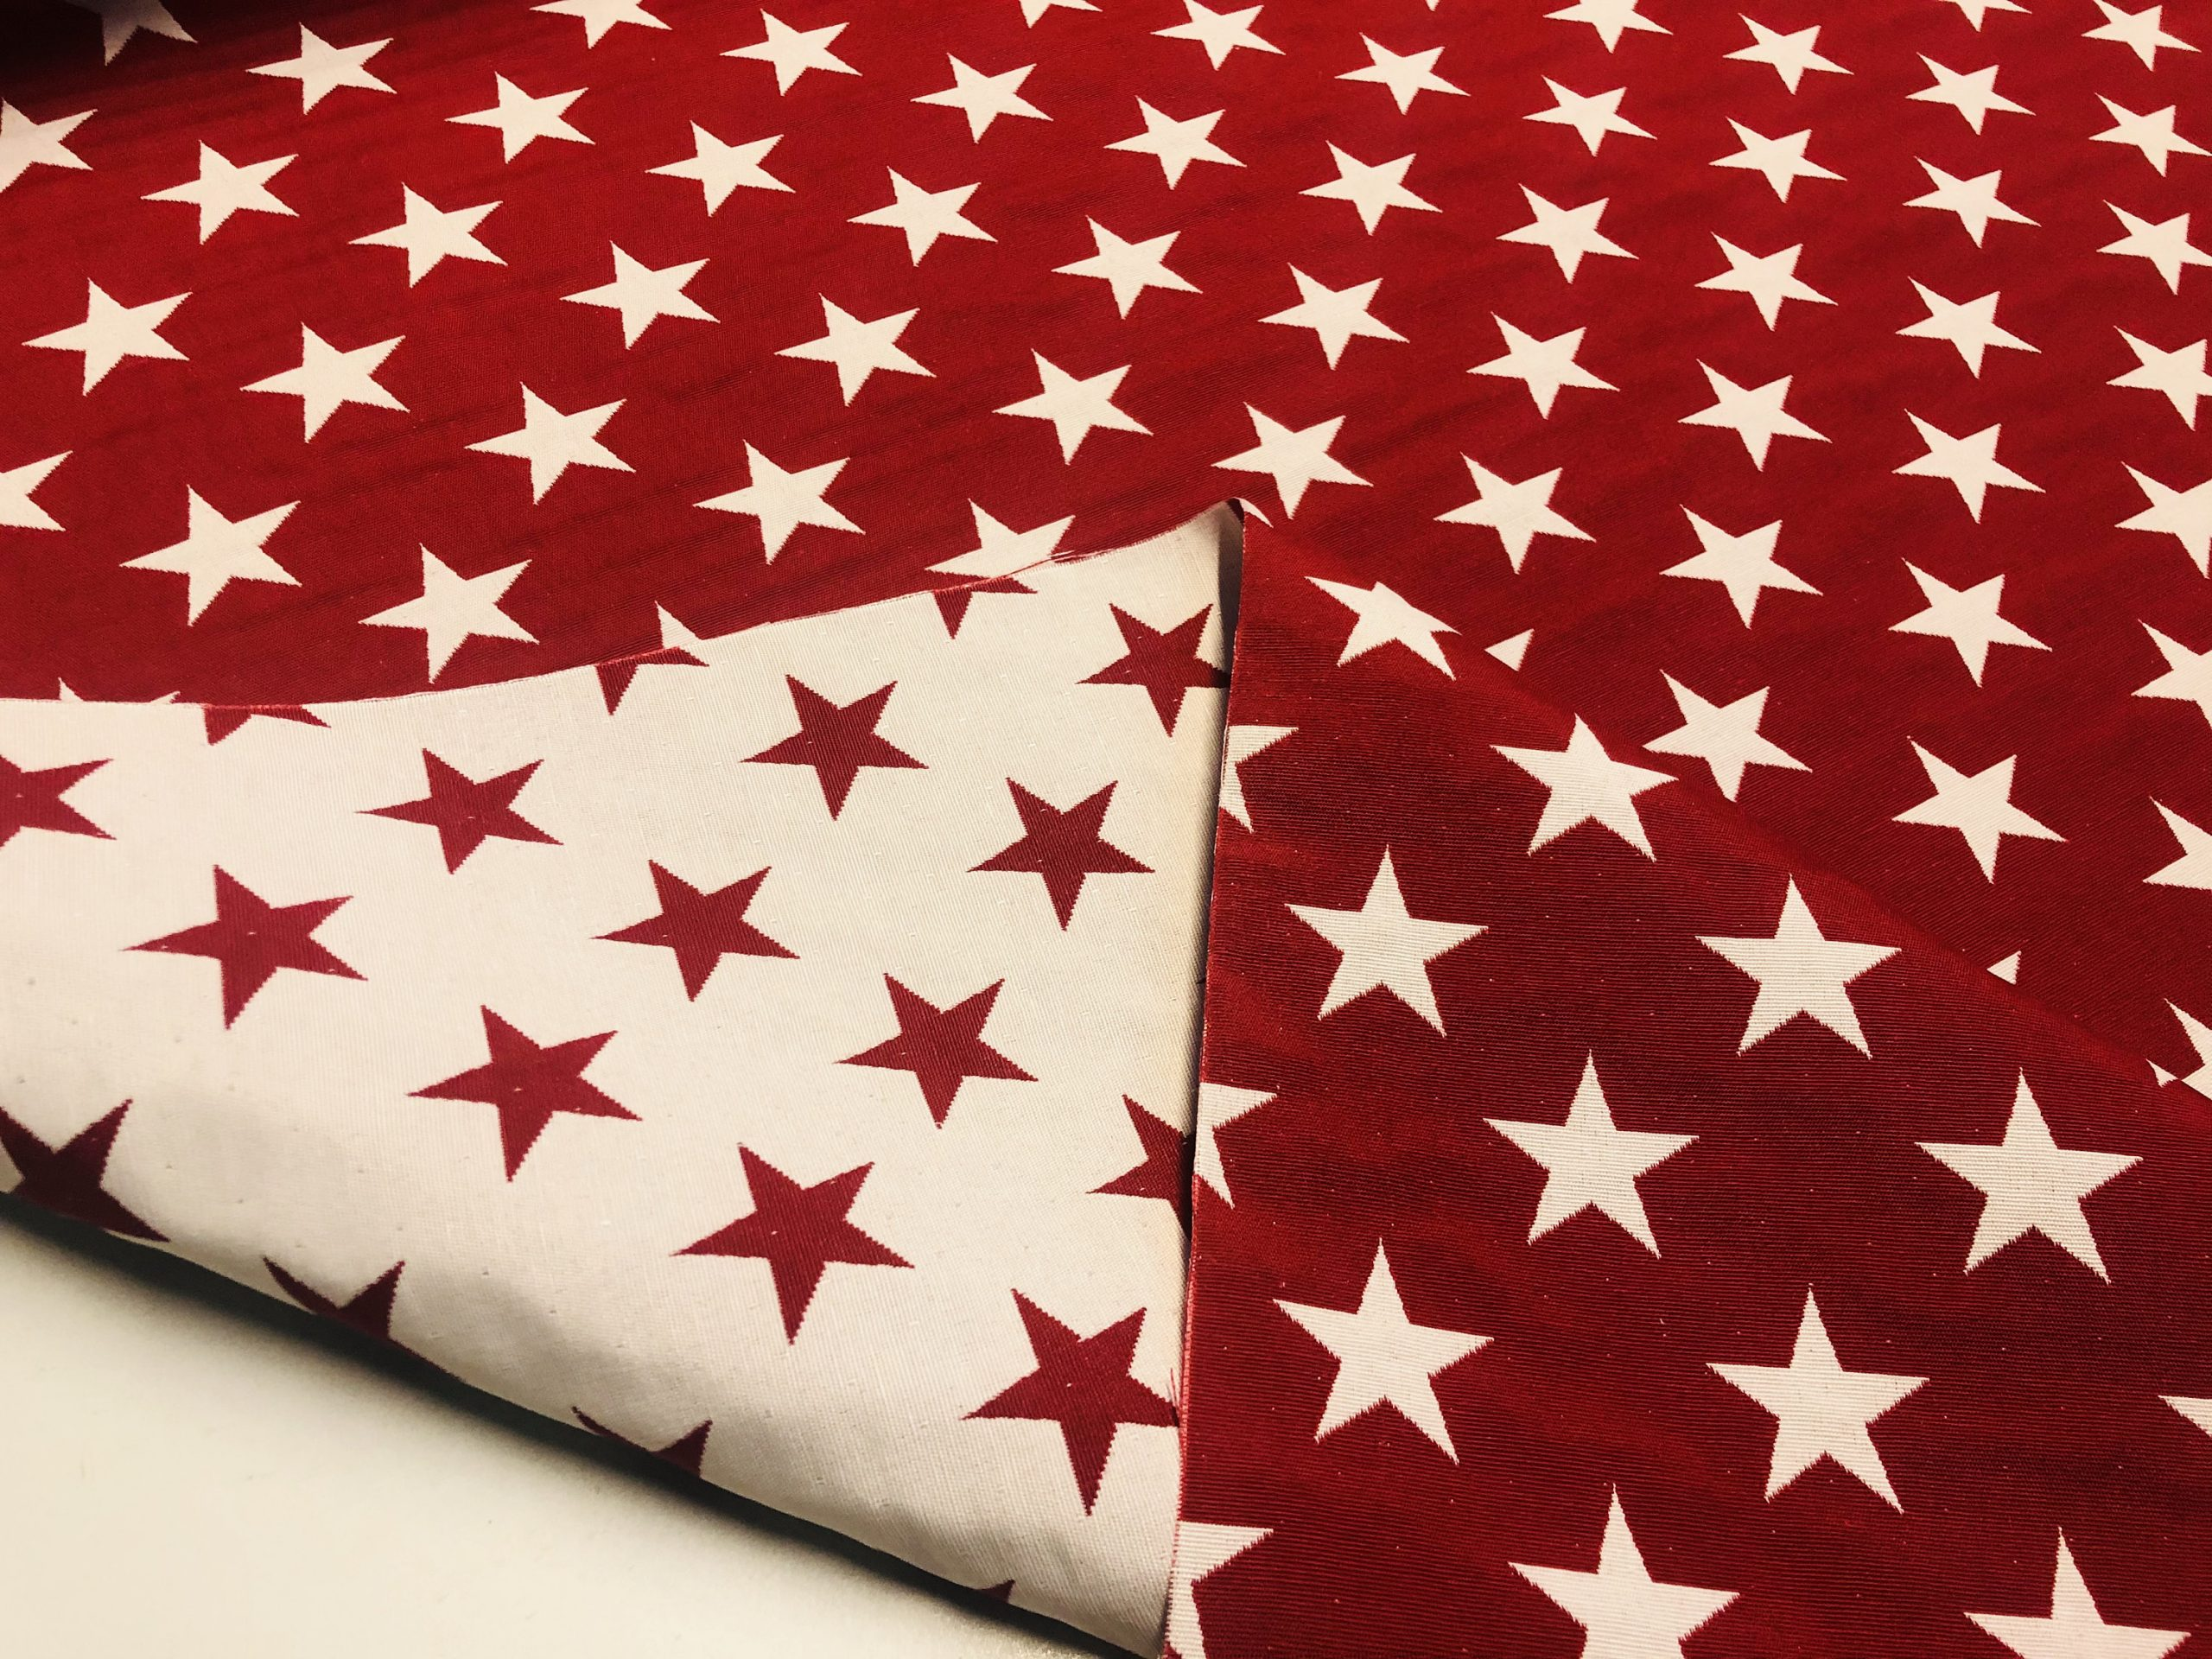 """Christmas Stars Jacquard Double Face Gobelin Fabric Material for Curtains Home Decor Upholstery – 55""""/140cm Wide – RED & WHITE"""